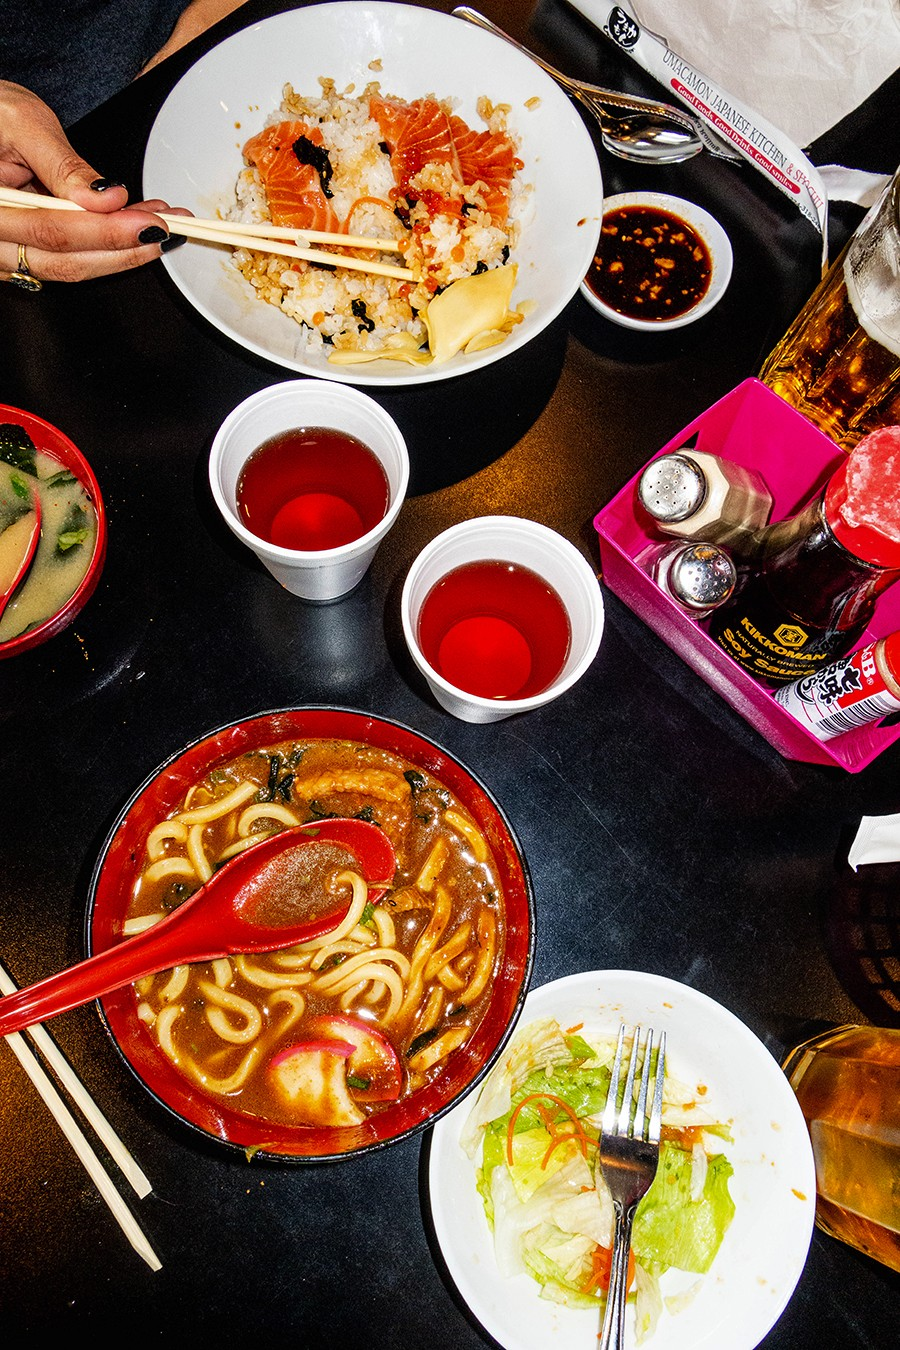 Rolling Meadows Umacamon Japanese Kitchen Upholds The